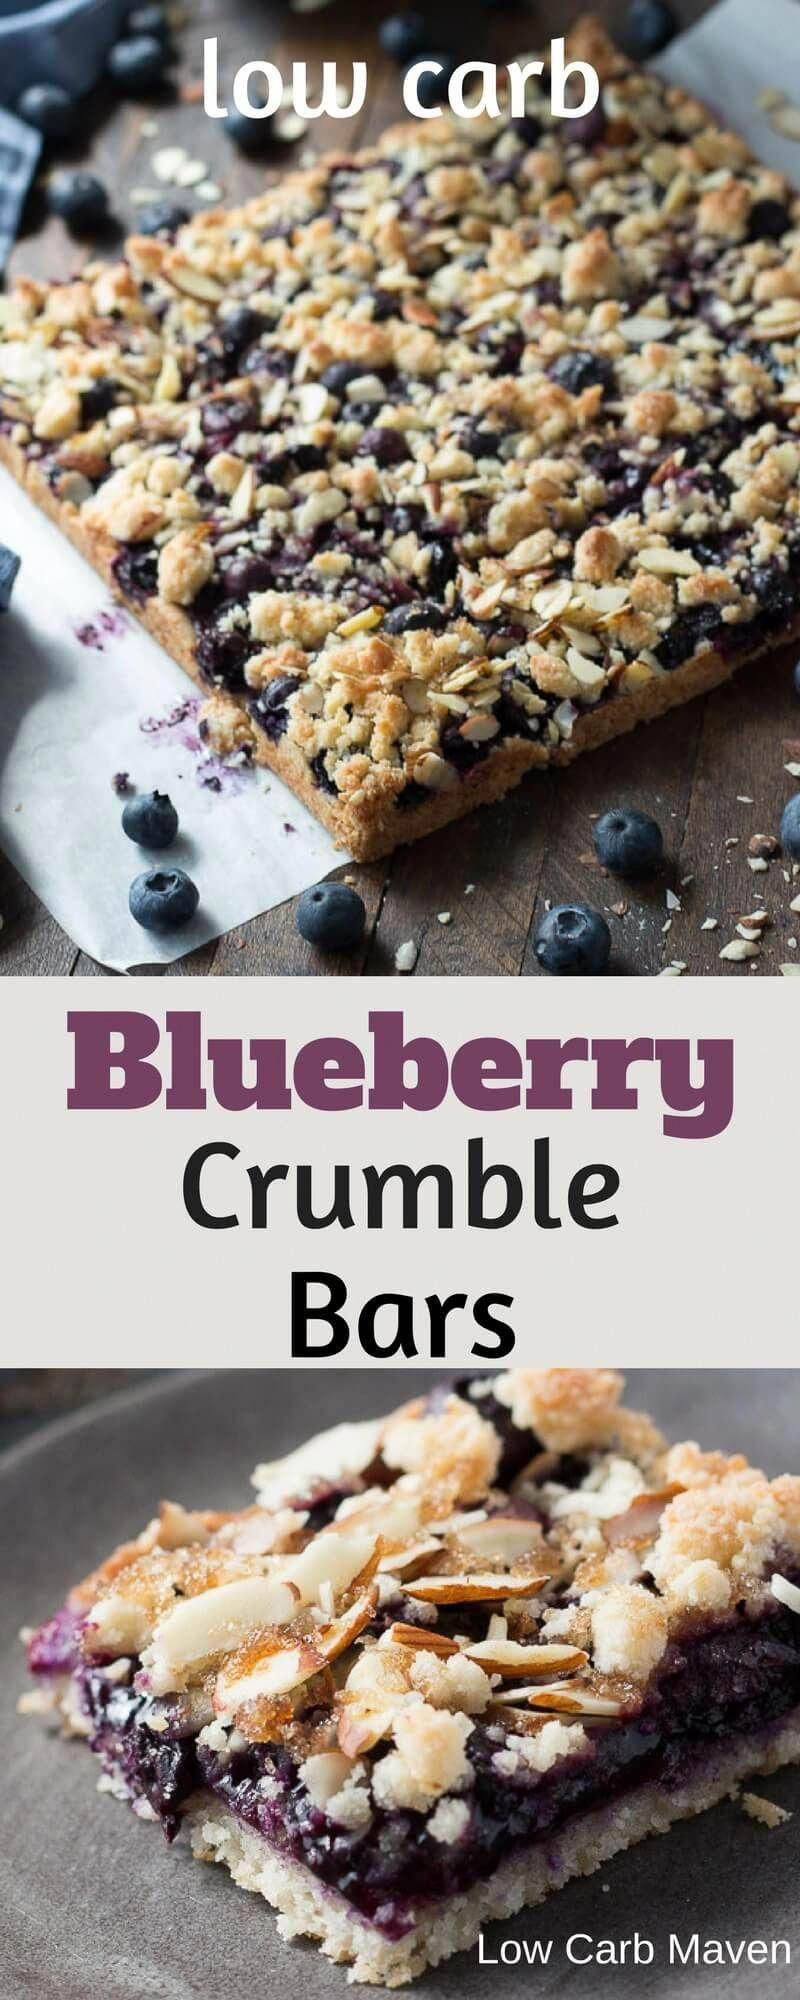 Low carb blueberry crumble bars made with almond flour are